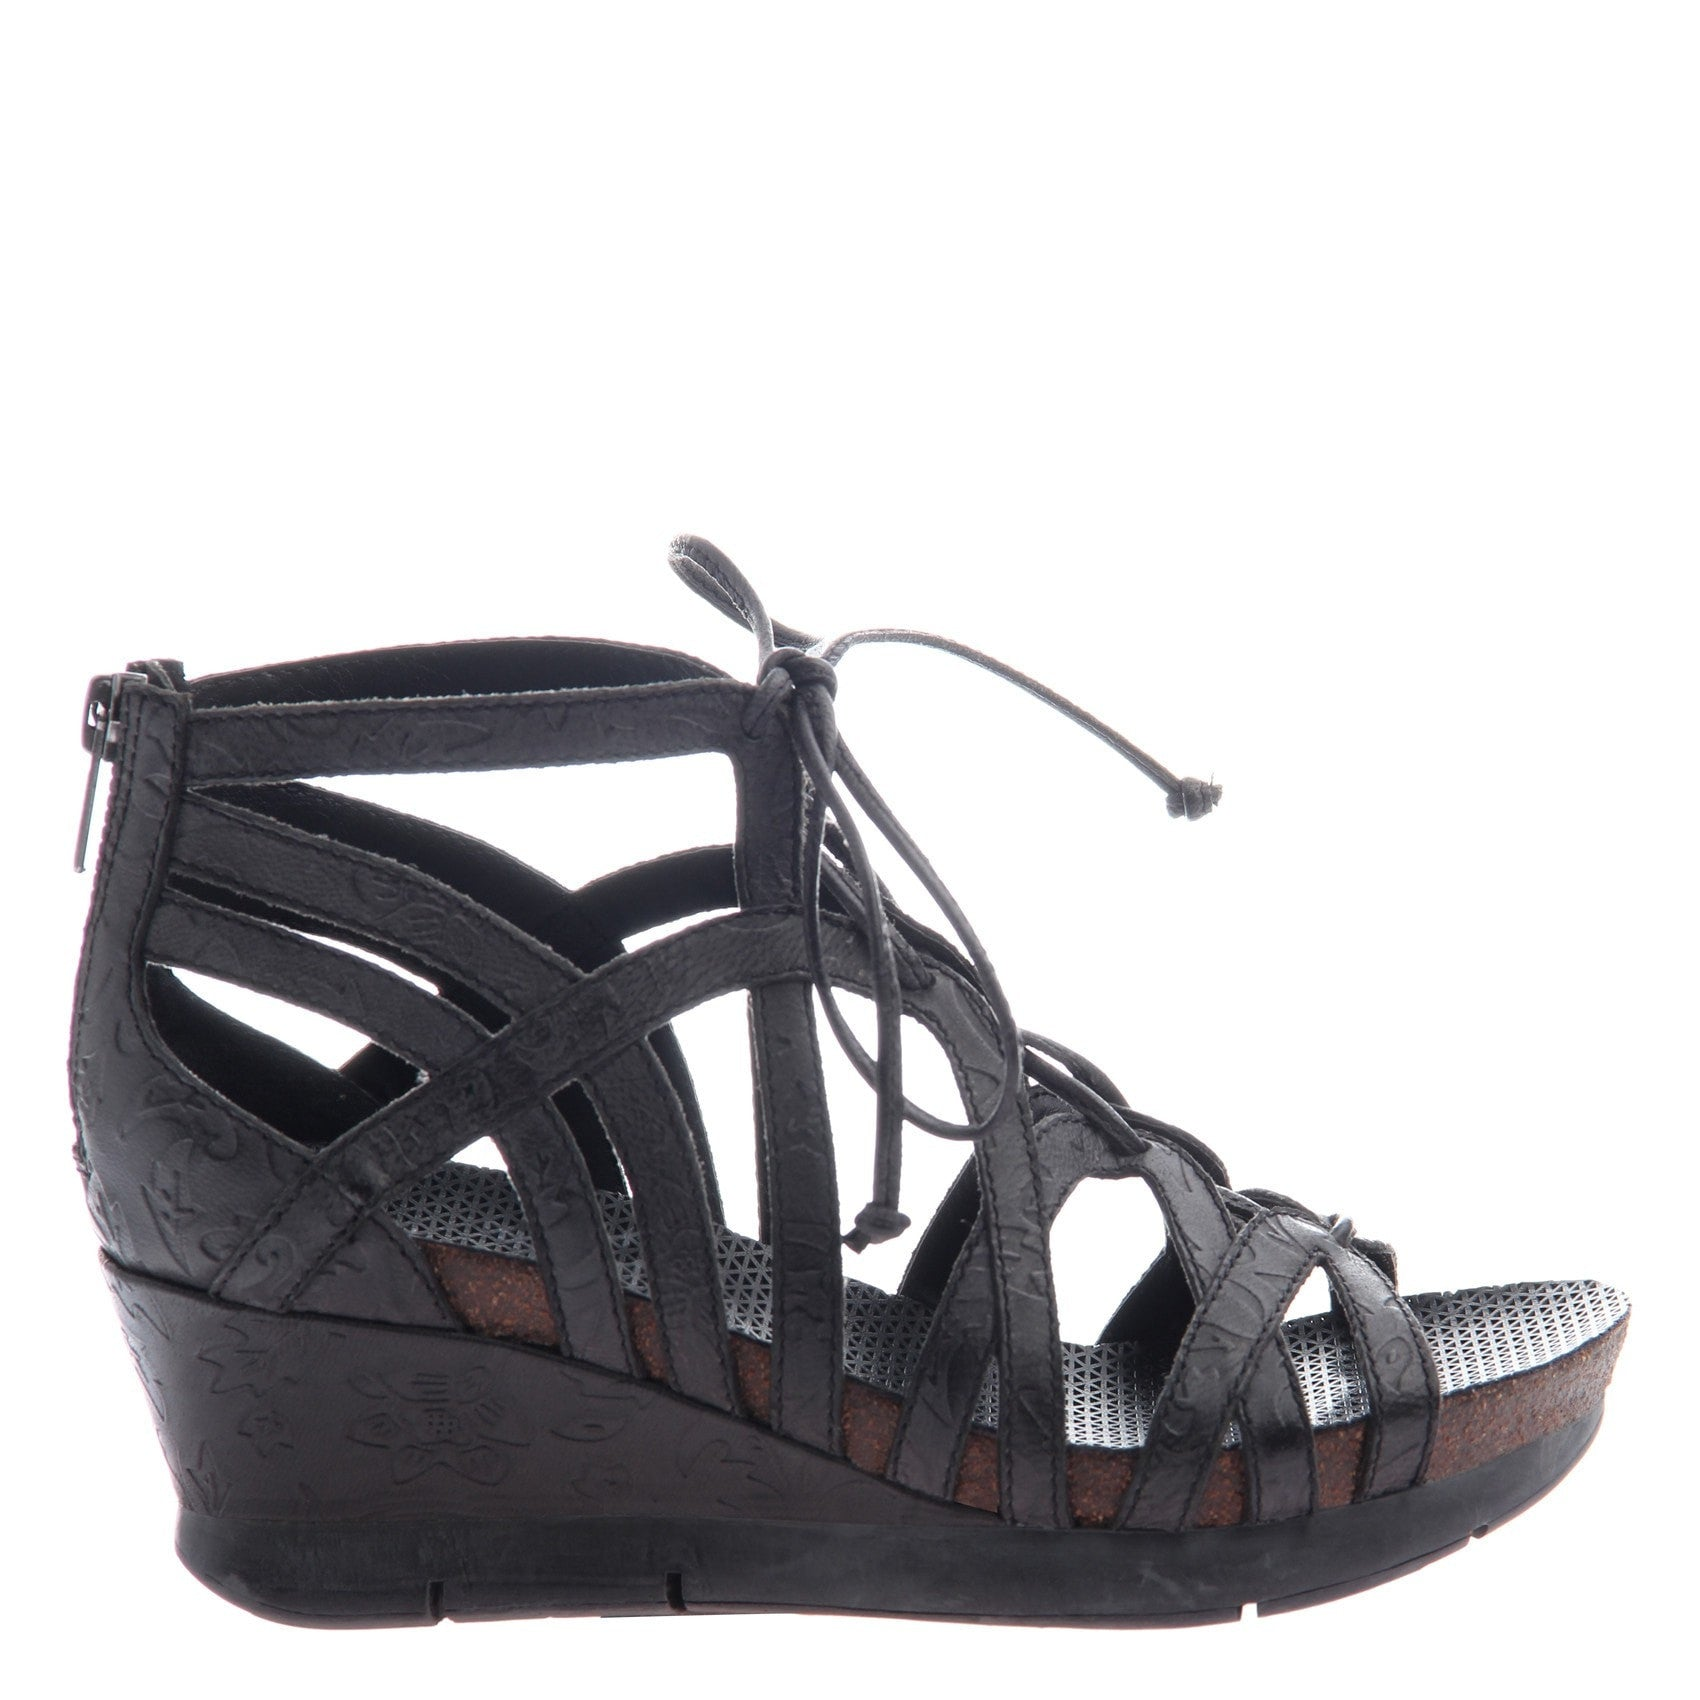 7e90e419164 Nomadic women s wedge in black side view